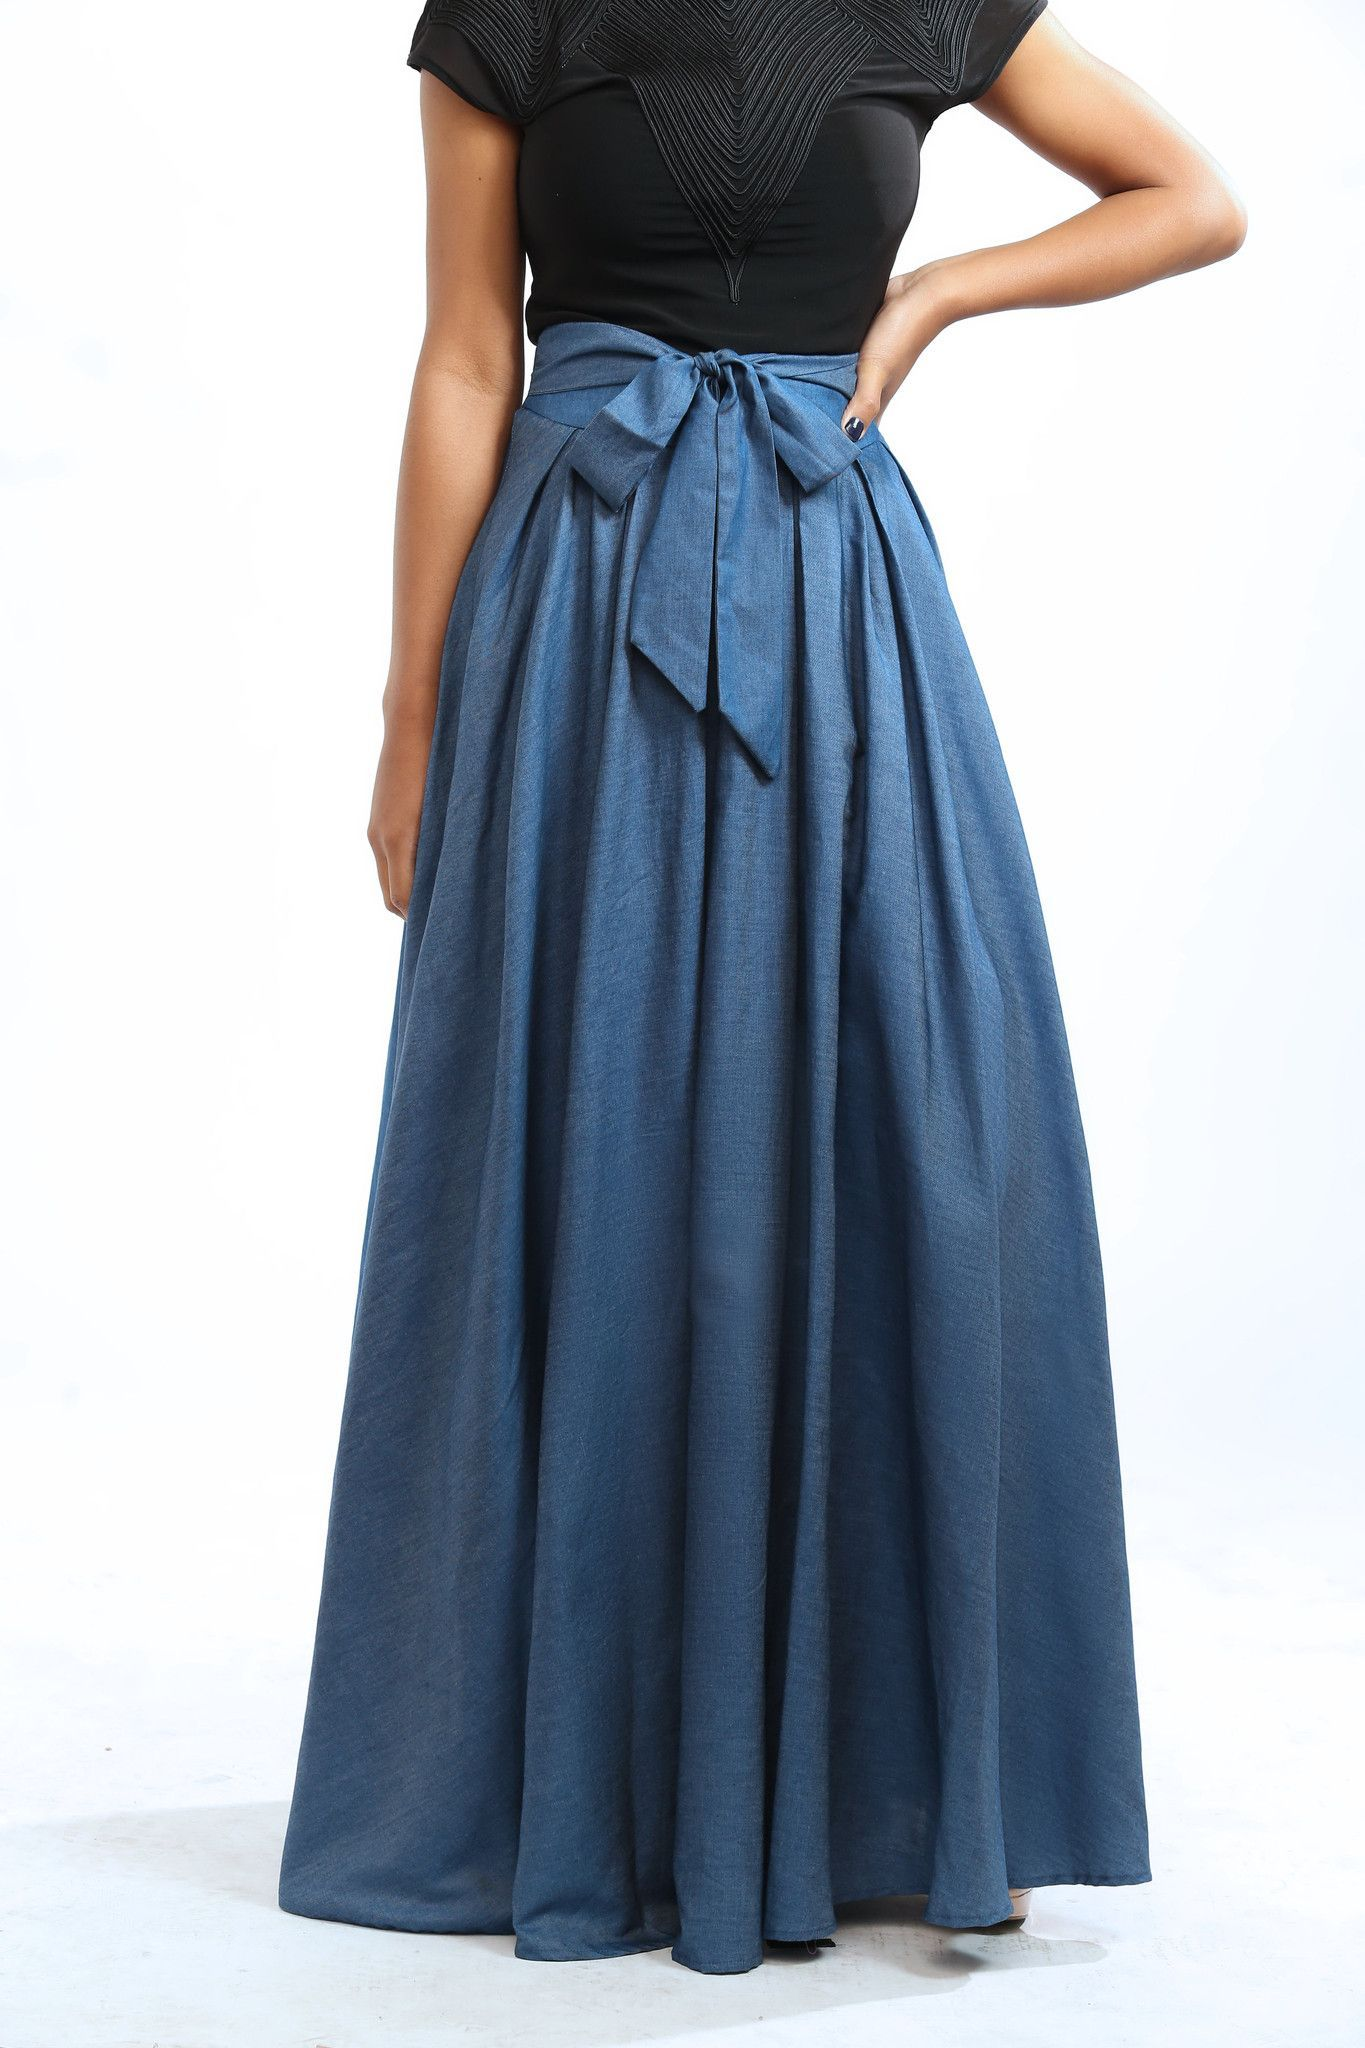 e835a11536d69 This is a beautiful lightweight maxi denim skirt with attached petticoat.  It has a slight